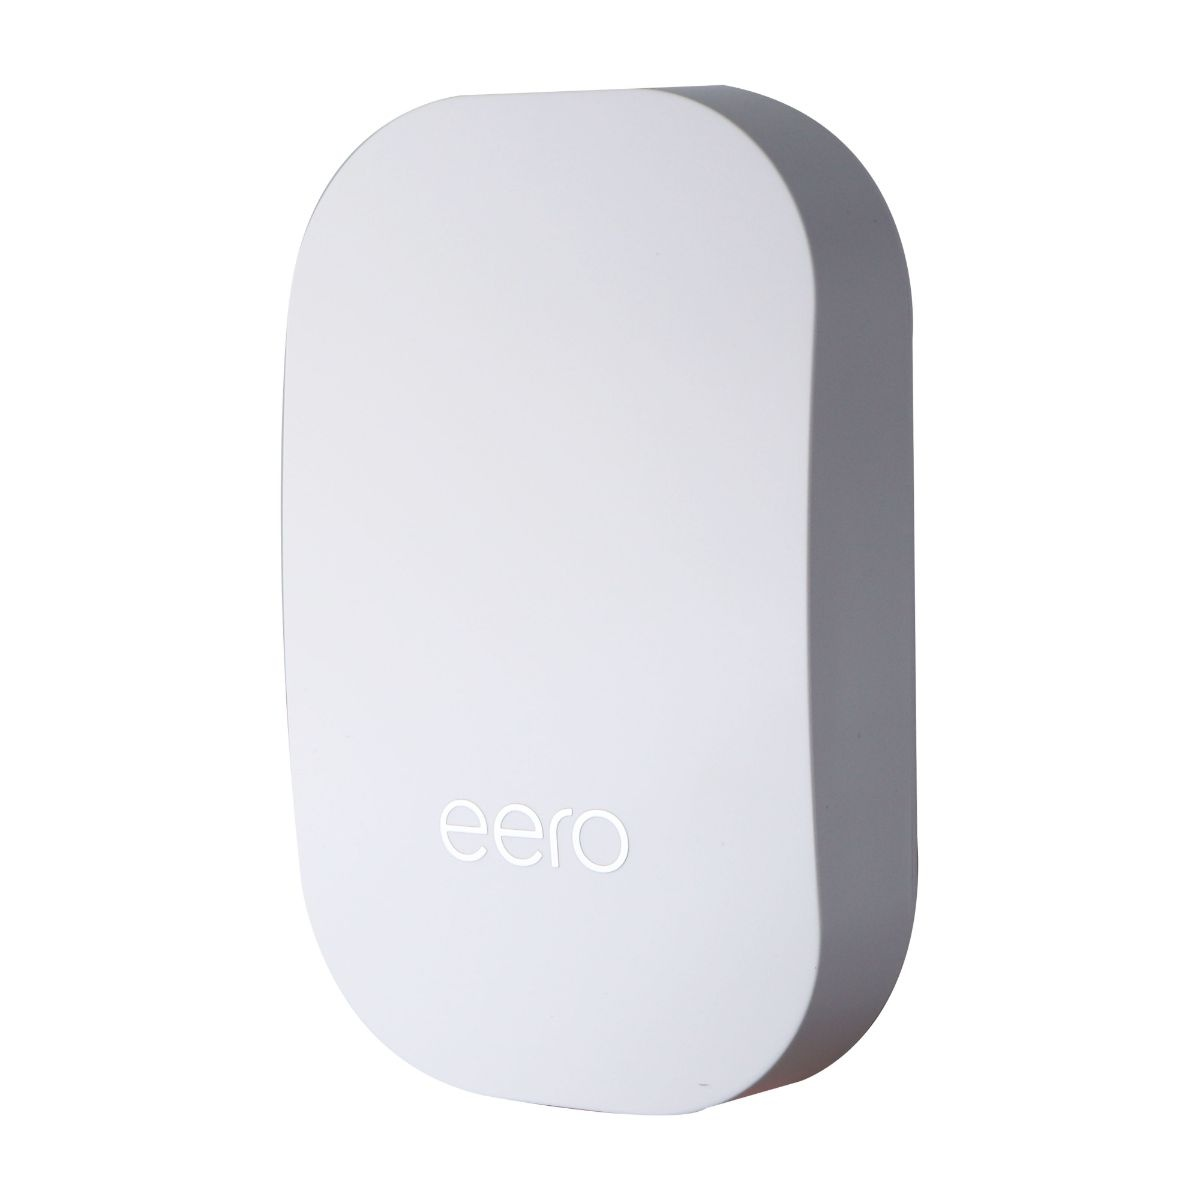 eero Beacon AC Wi-Fi Network Extender (D010101) - Single Add-On - White